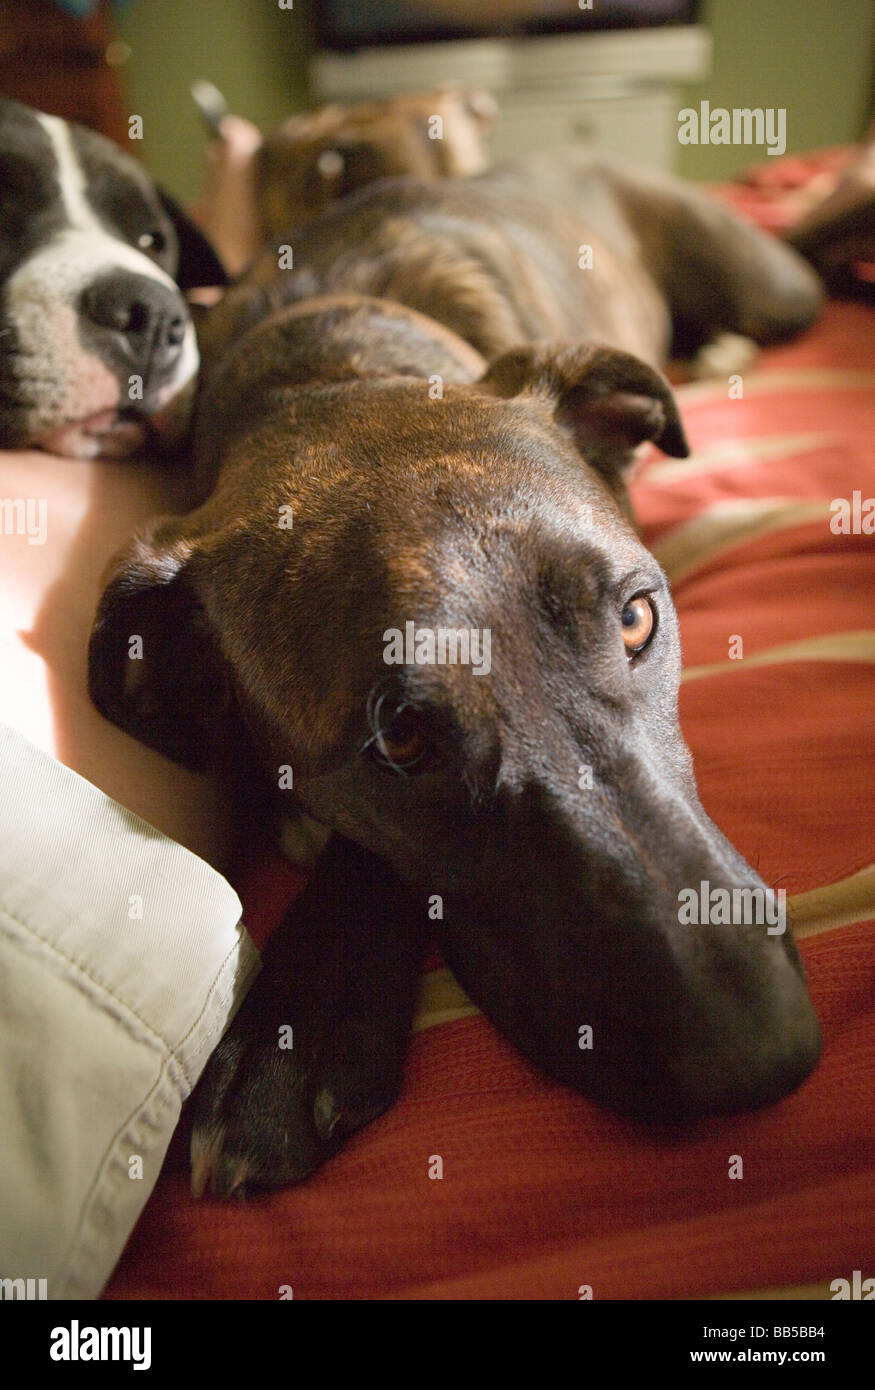 close up of dogs sleeping on a bed looking sad - Stock Image